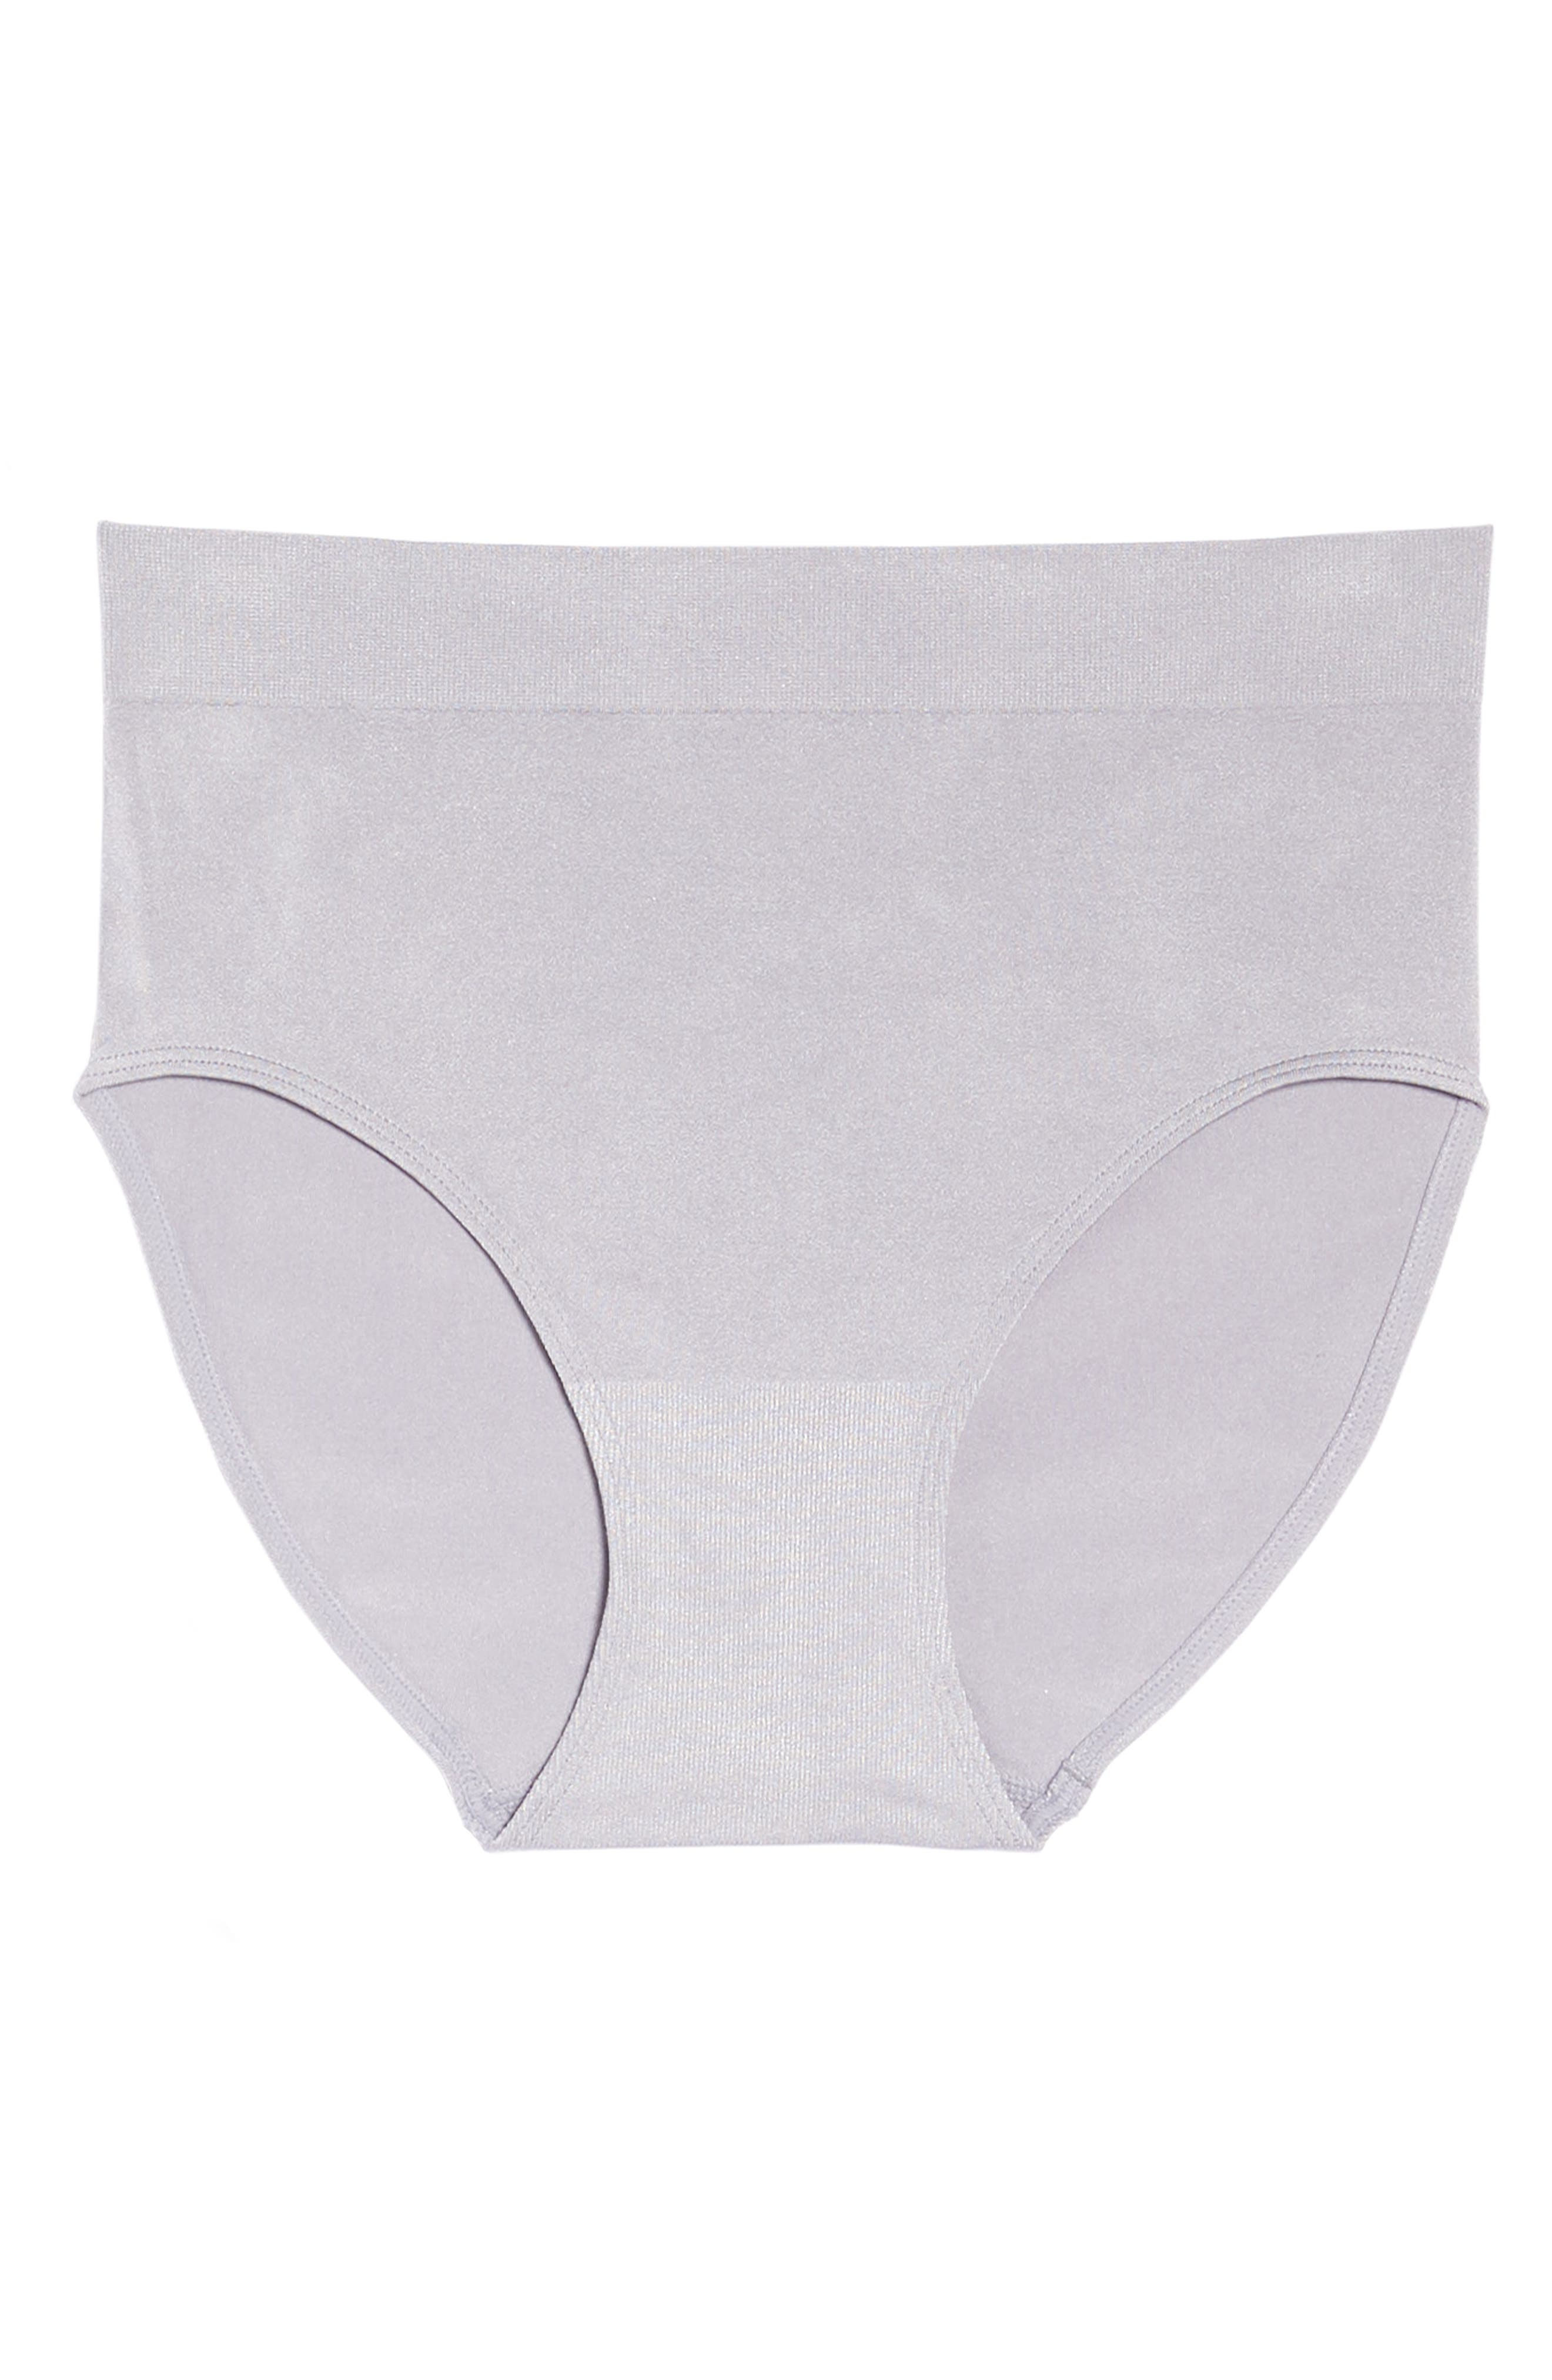 B Smooth Briefs,                             Alternate thumbnail 266, color,